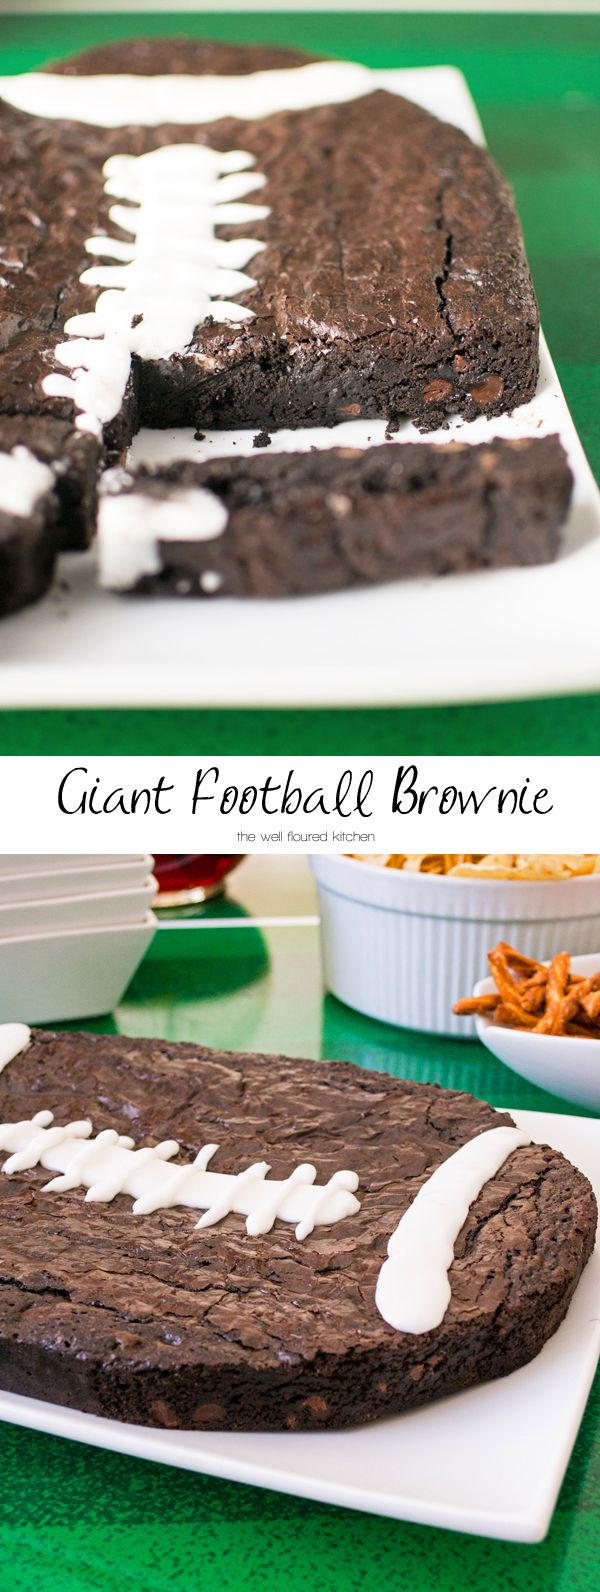 Thick and fudgy giant brownie shaped and decorated as a football for your next game day party!